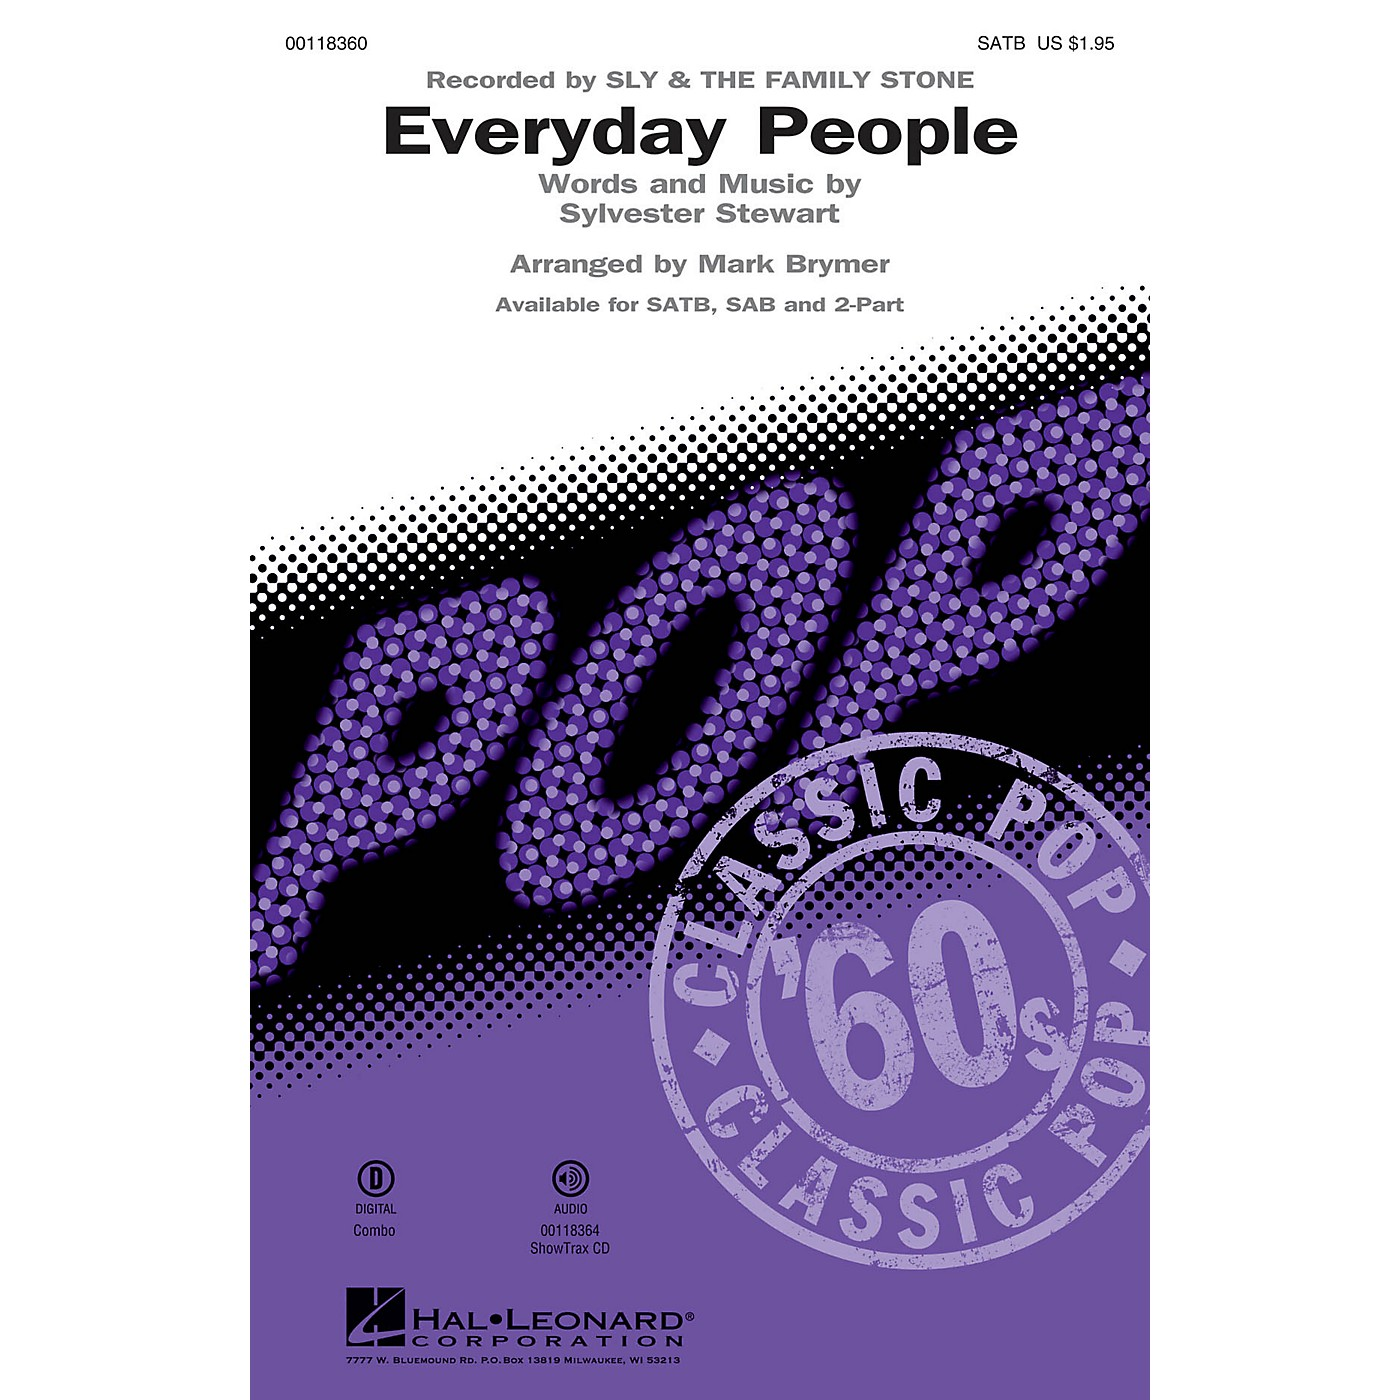 Hal Leonard Everyday People (SATB) SATB by Sly and the Family Stone arranged by Mark Brymer thumbnail